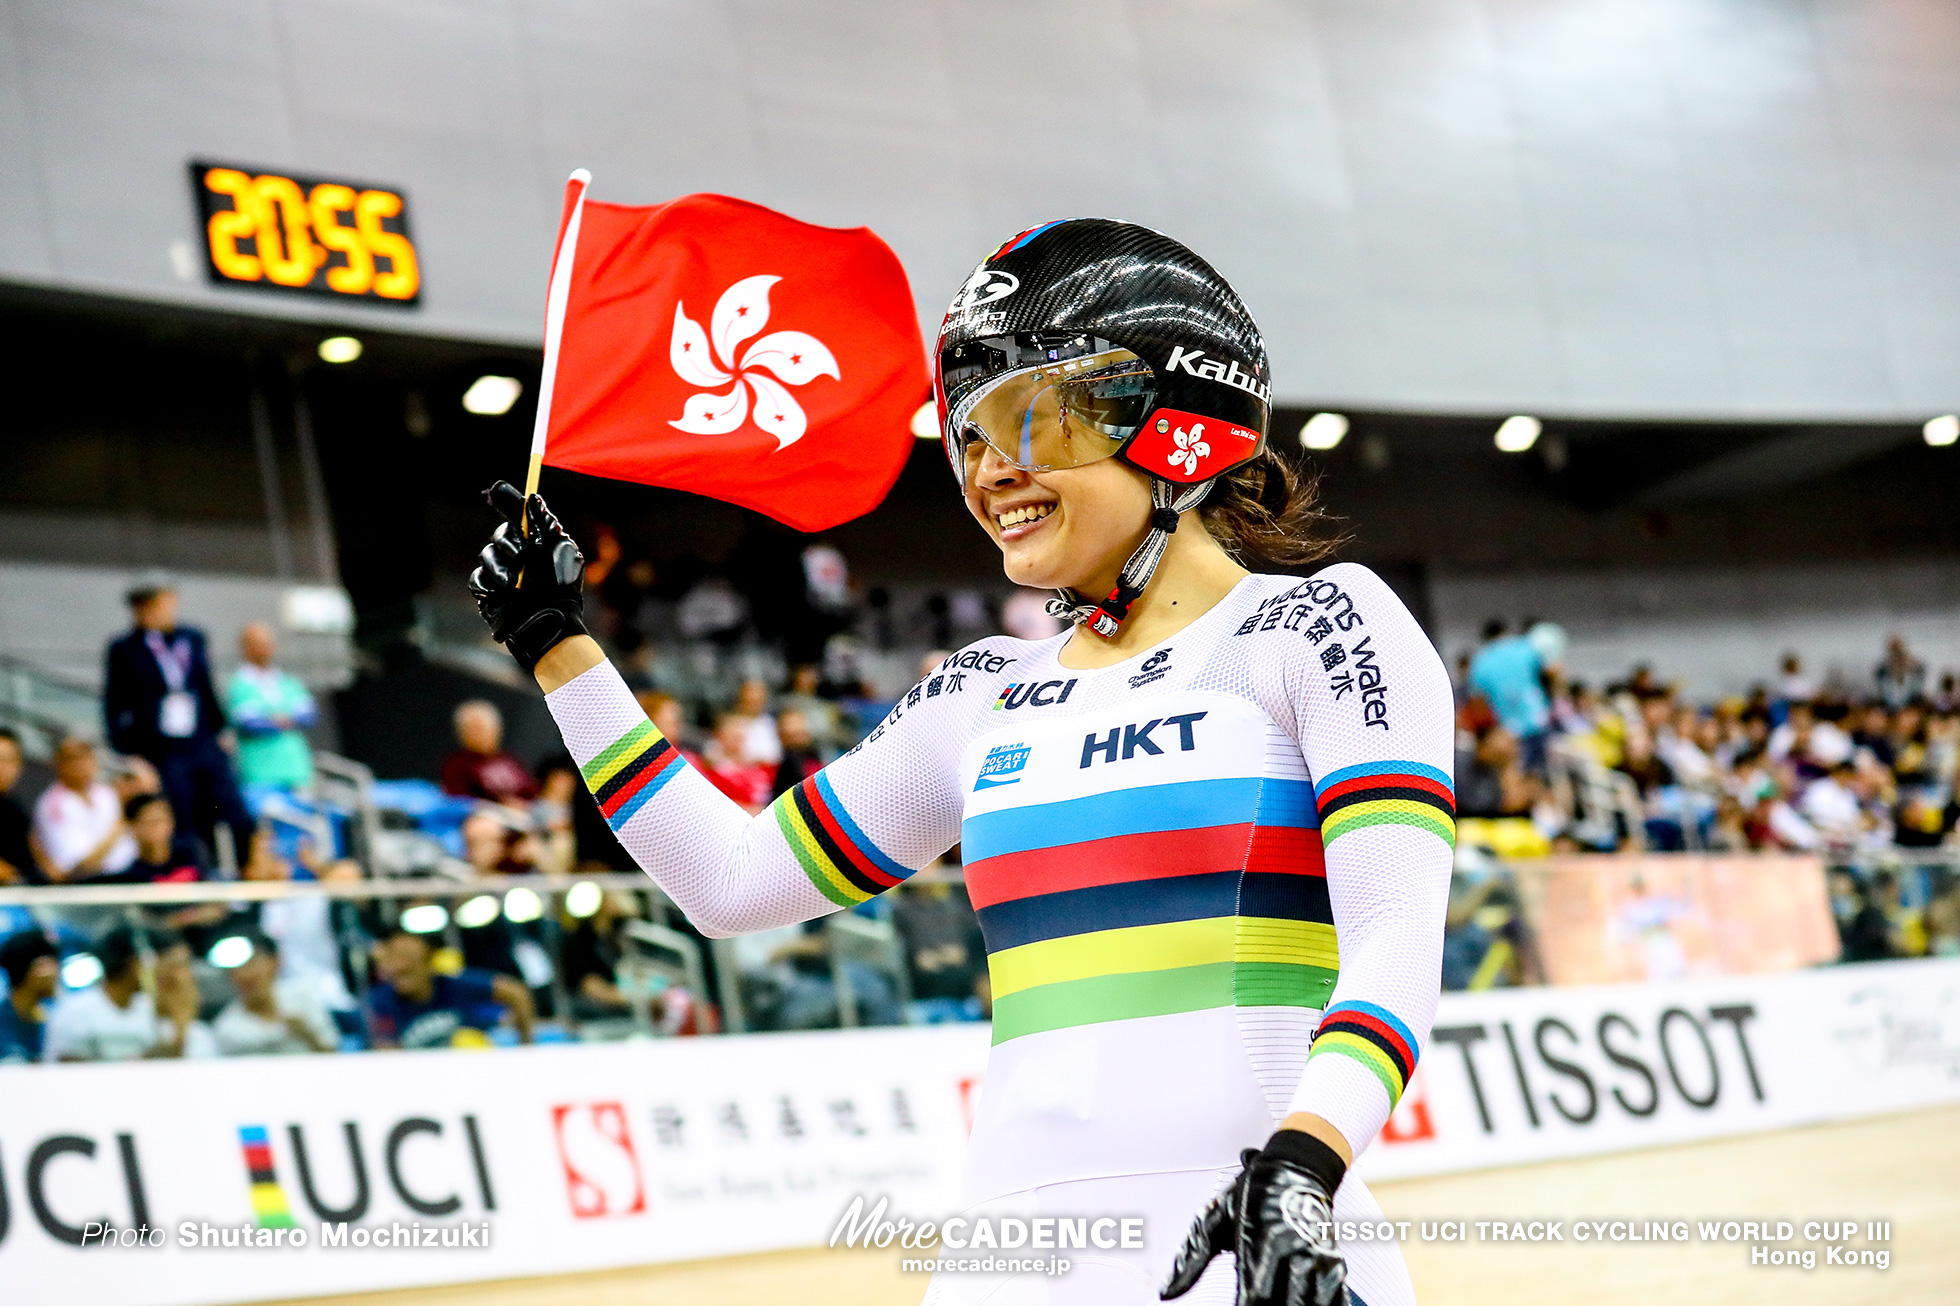 Final / Women's Sprint / TISSOT UCI TRACK CYCLING WORLD CUP III, Hong Kong, LEE Wai Sze リー・ワイジー 李慧詩